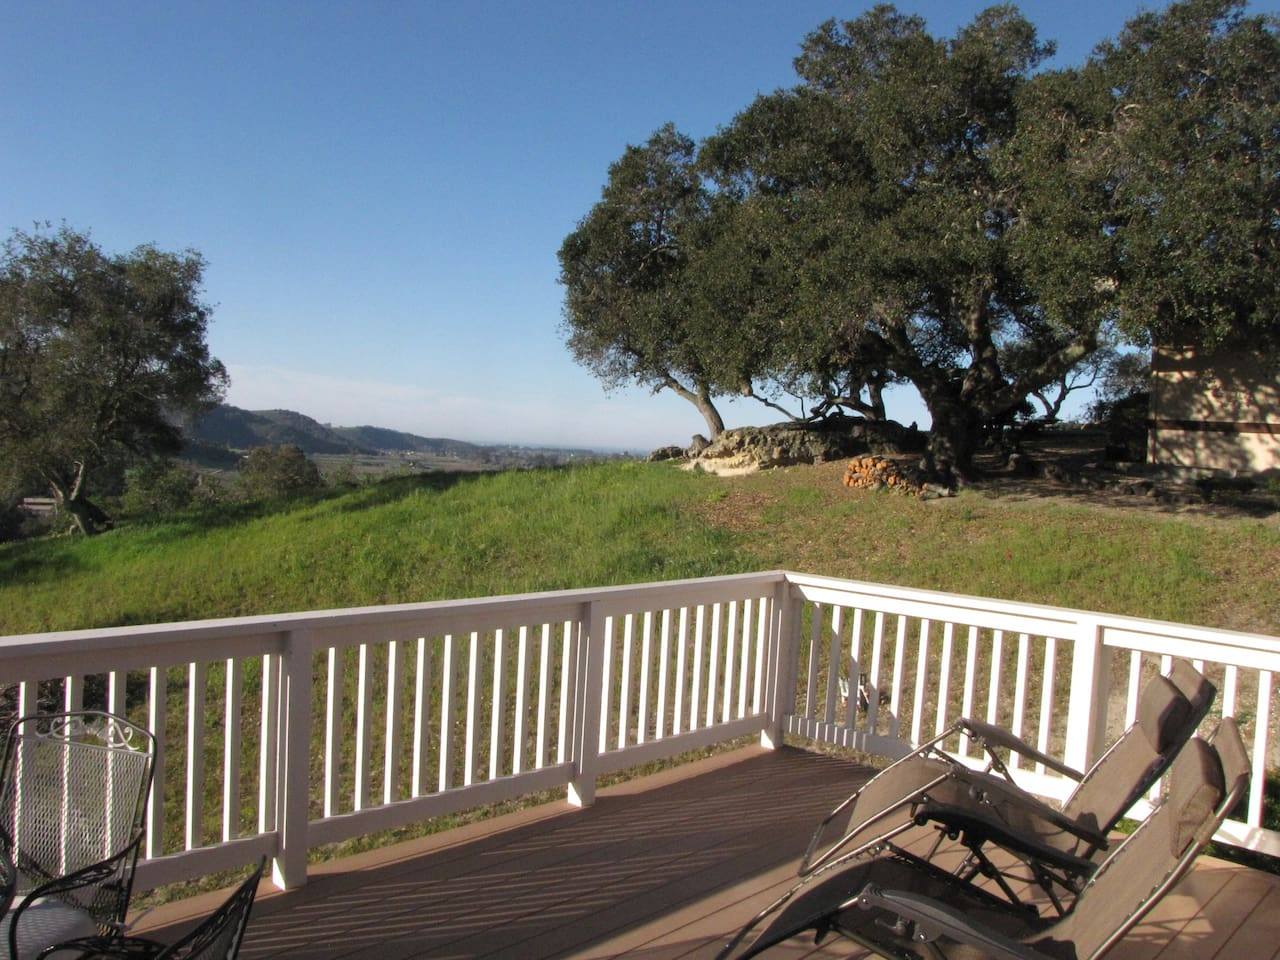 Enjoy morning coffee or evening wine on your private deck with ocean view!